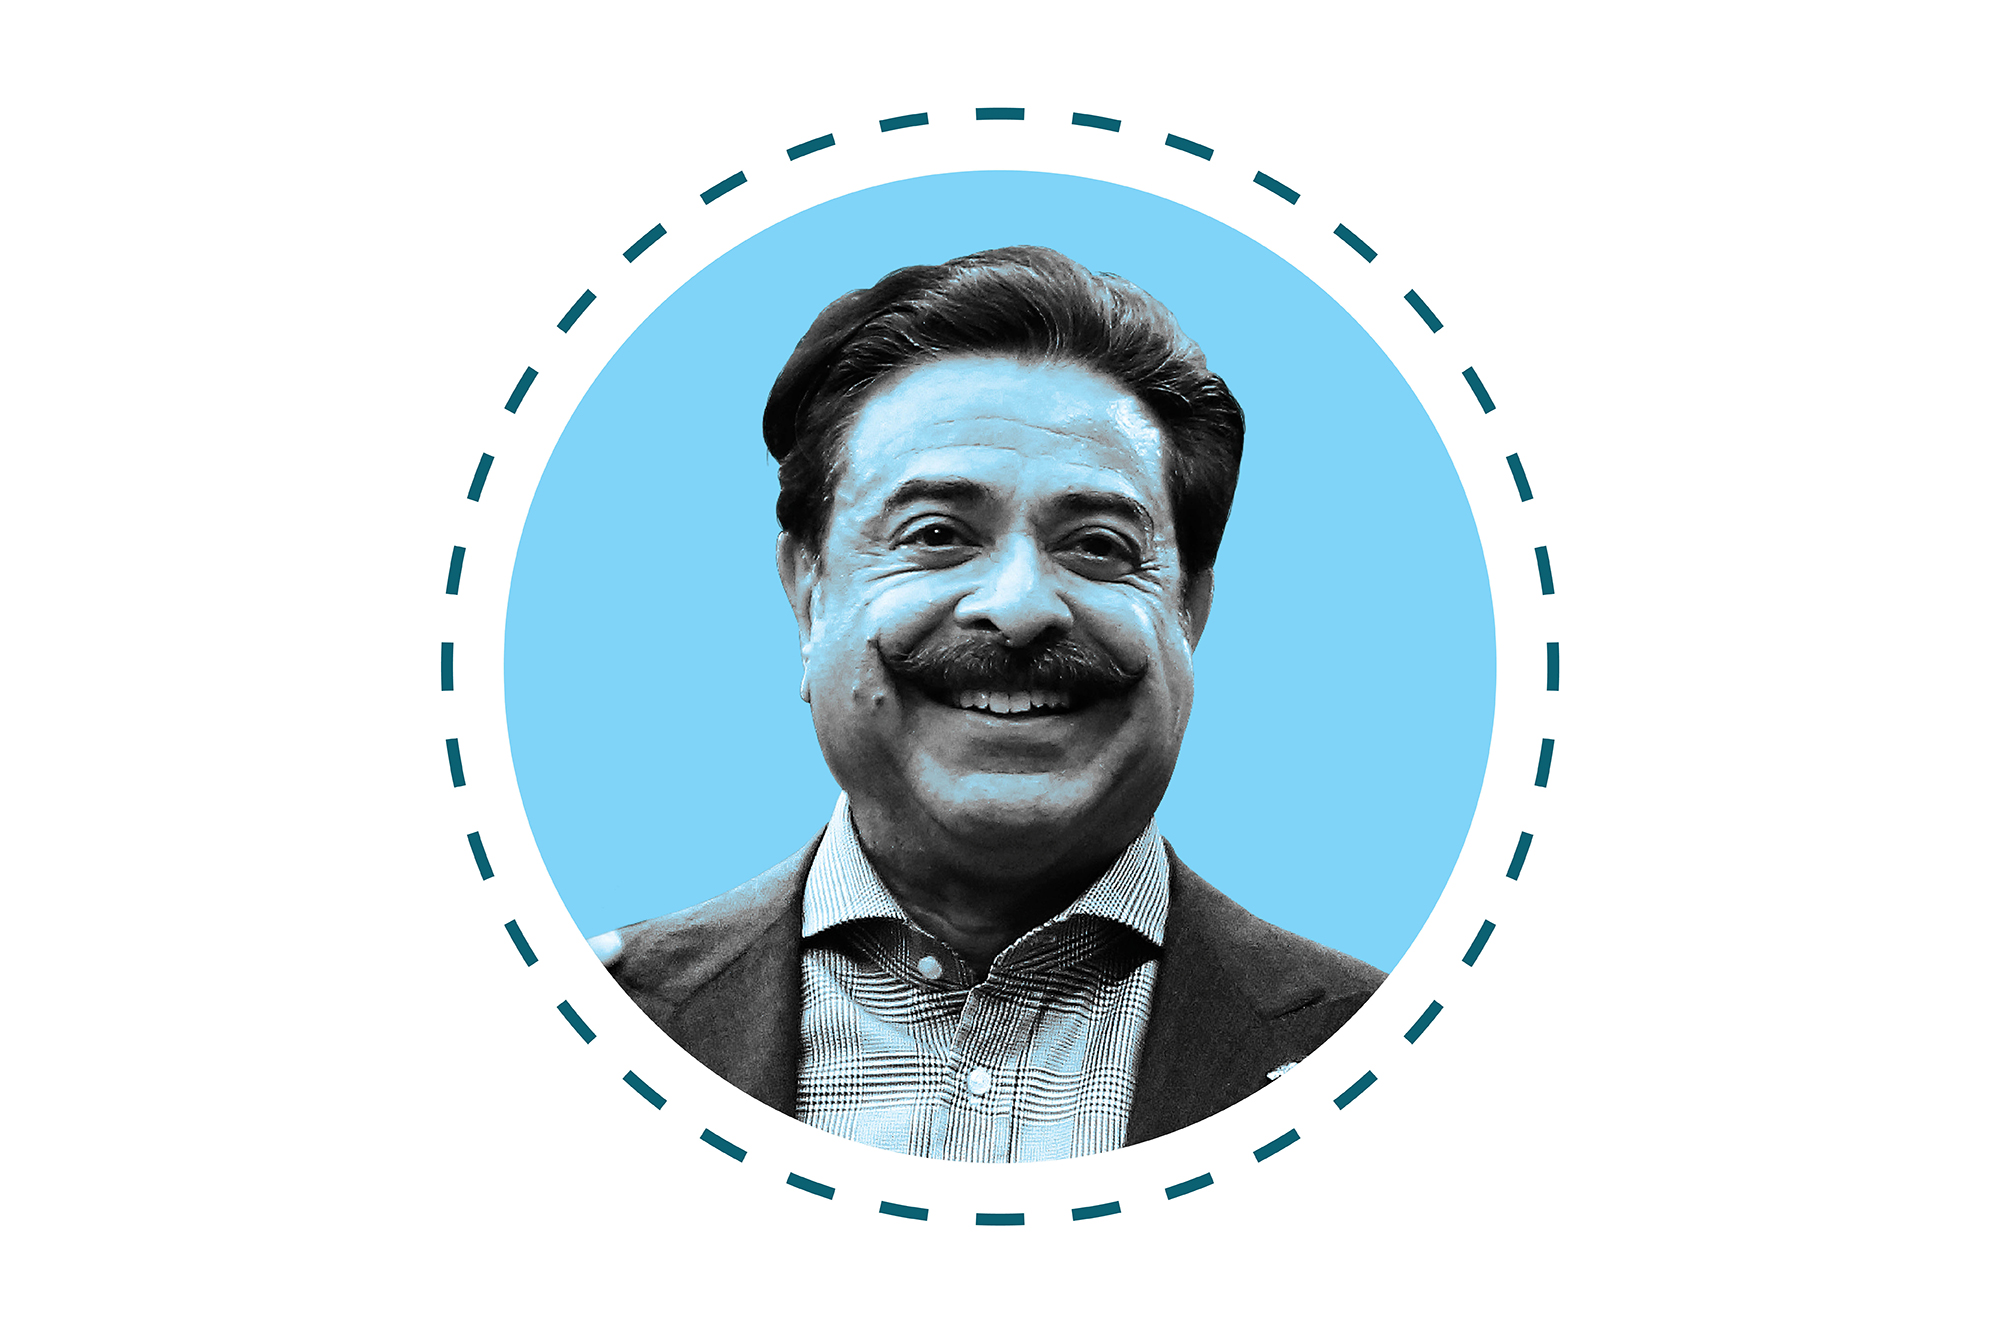 Jacksonville Jaguars Owner: Shahid Khan net worth, political donations